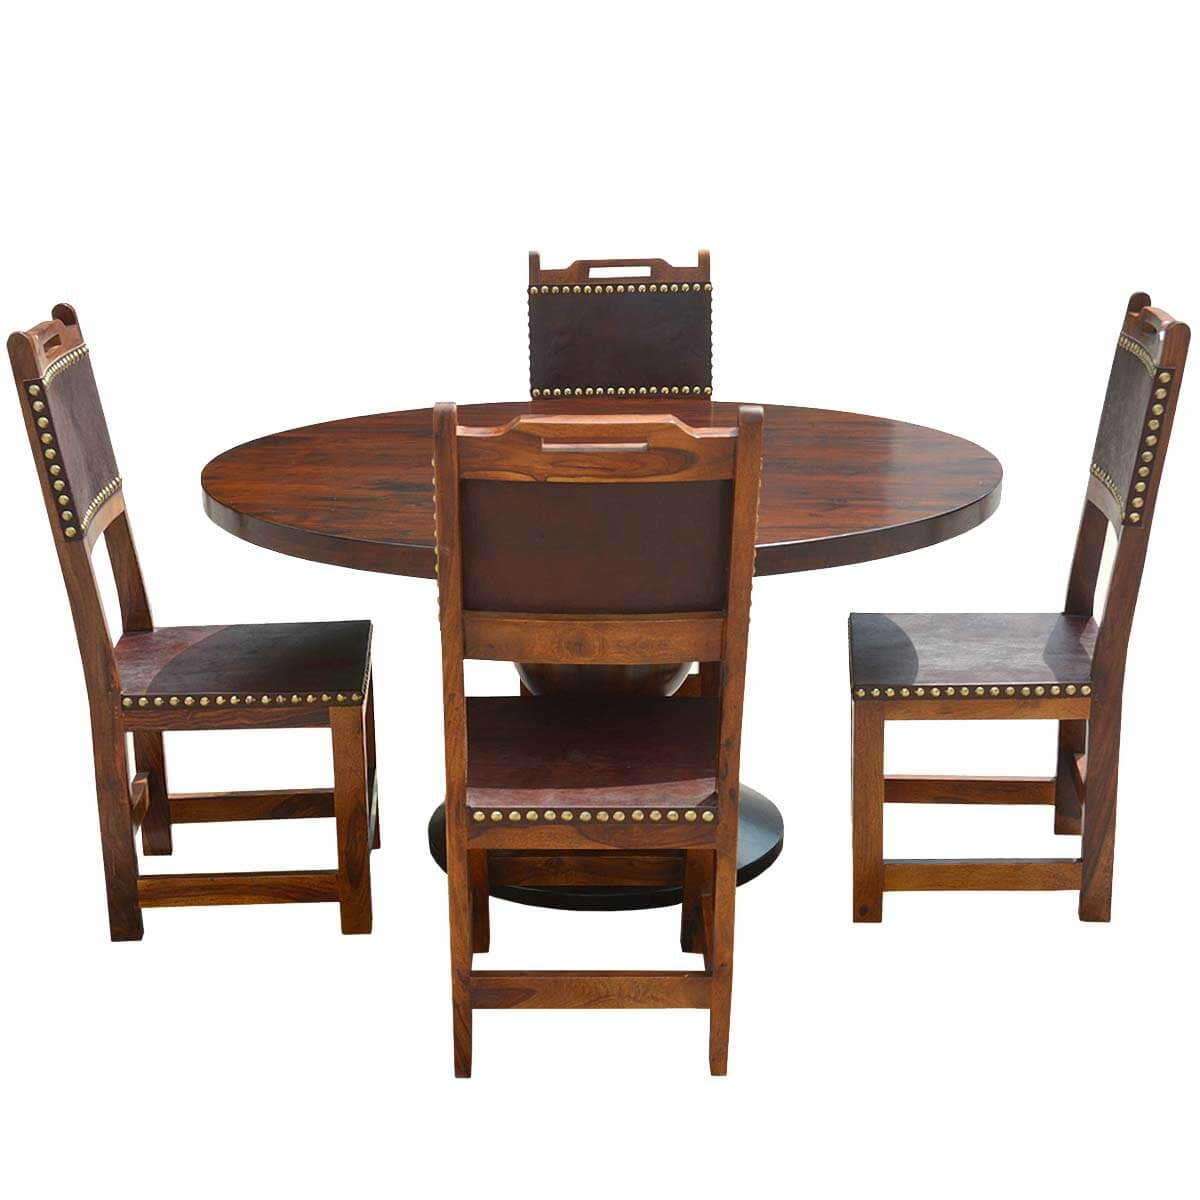 suede dining table chairs homedics elounger massage chair santa ana round kitchen set with leather back